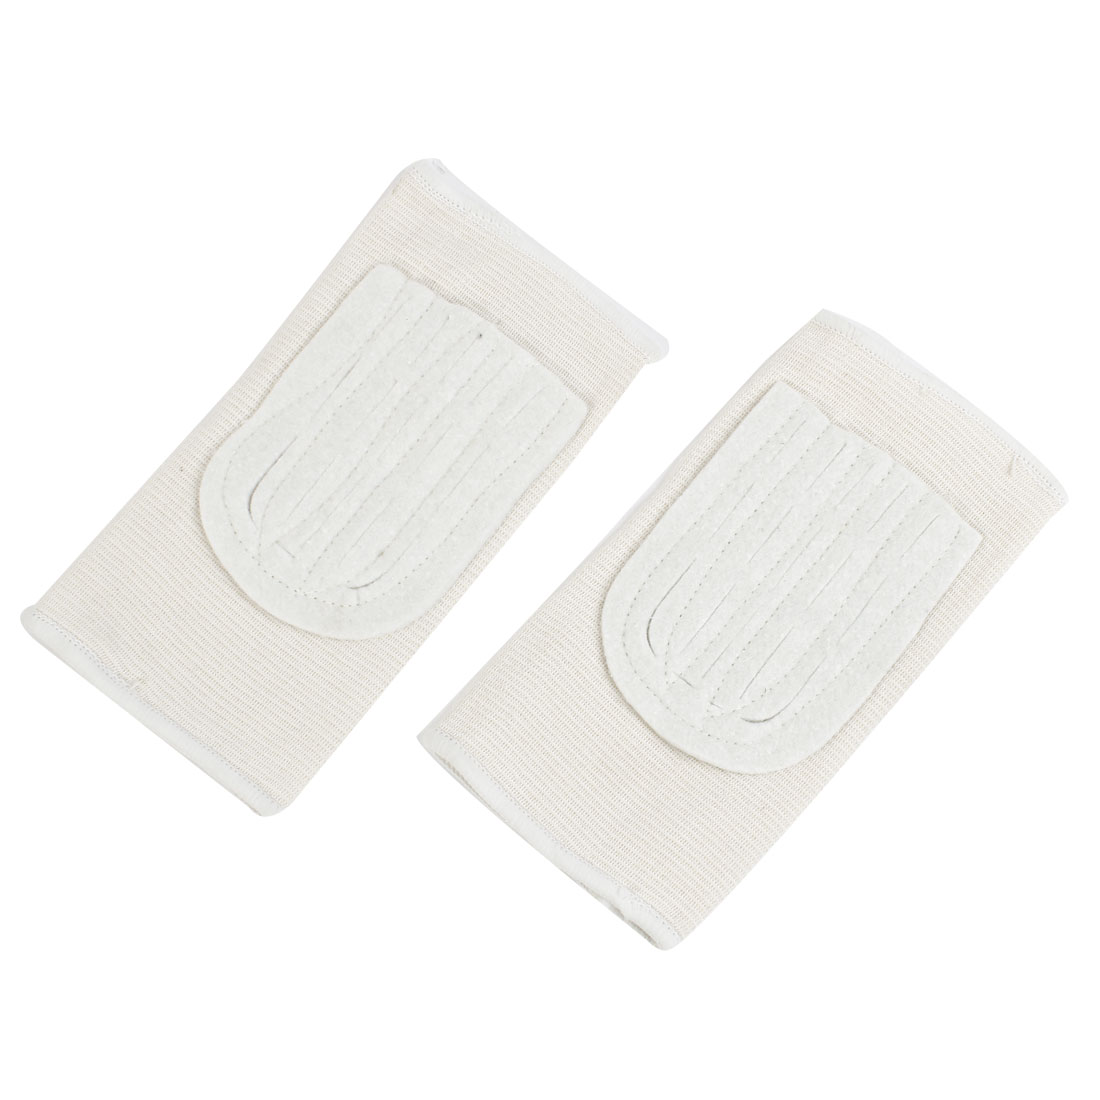 Pair Pullover Style Elastic Flat Knee Support Brace Protector White